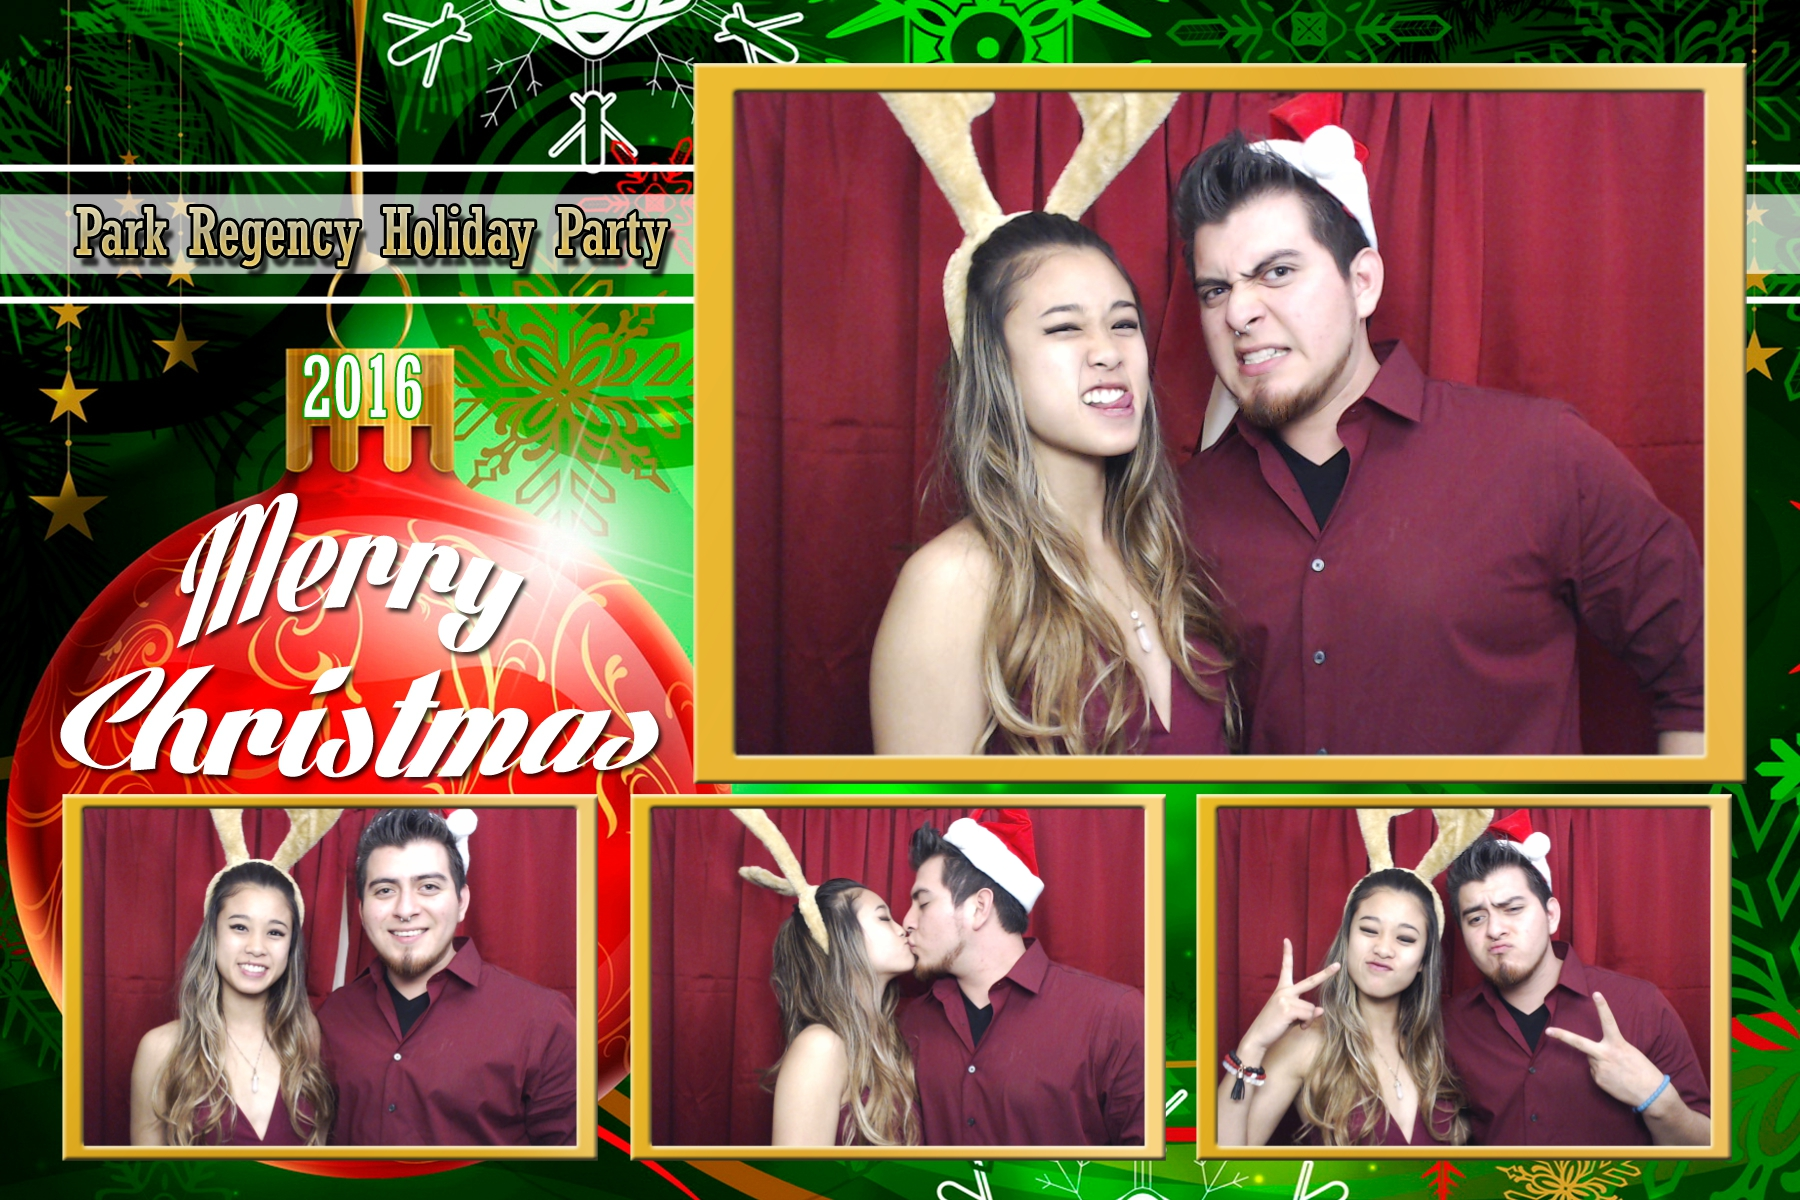 Park Regency Holiday Party